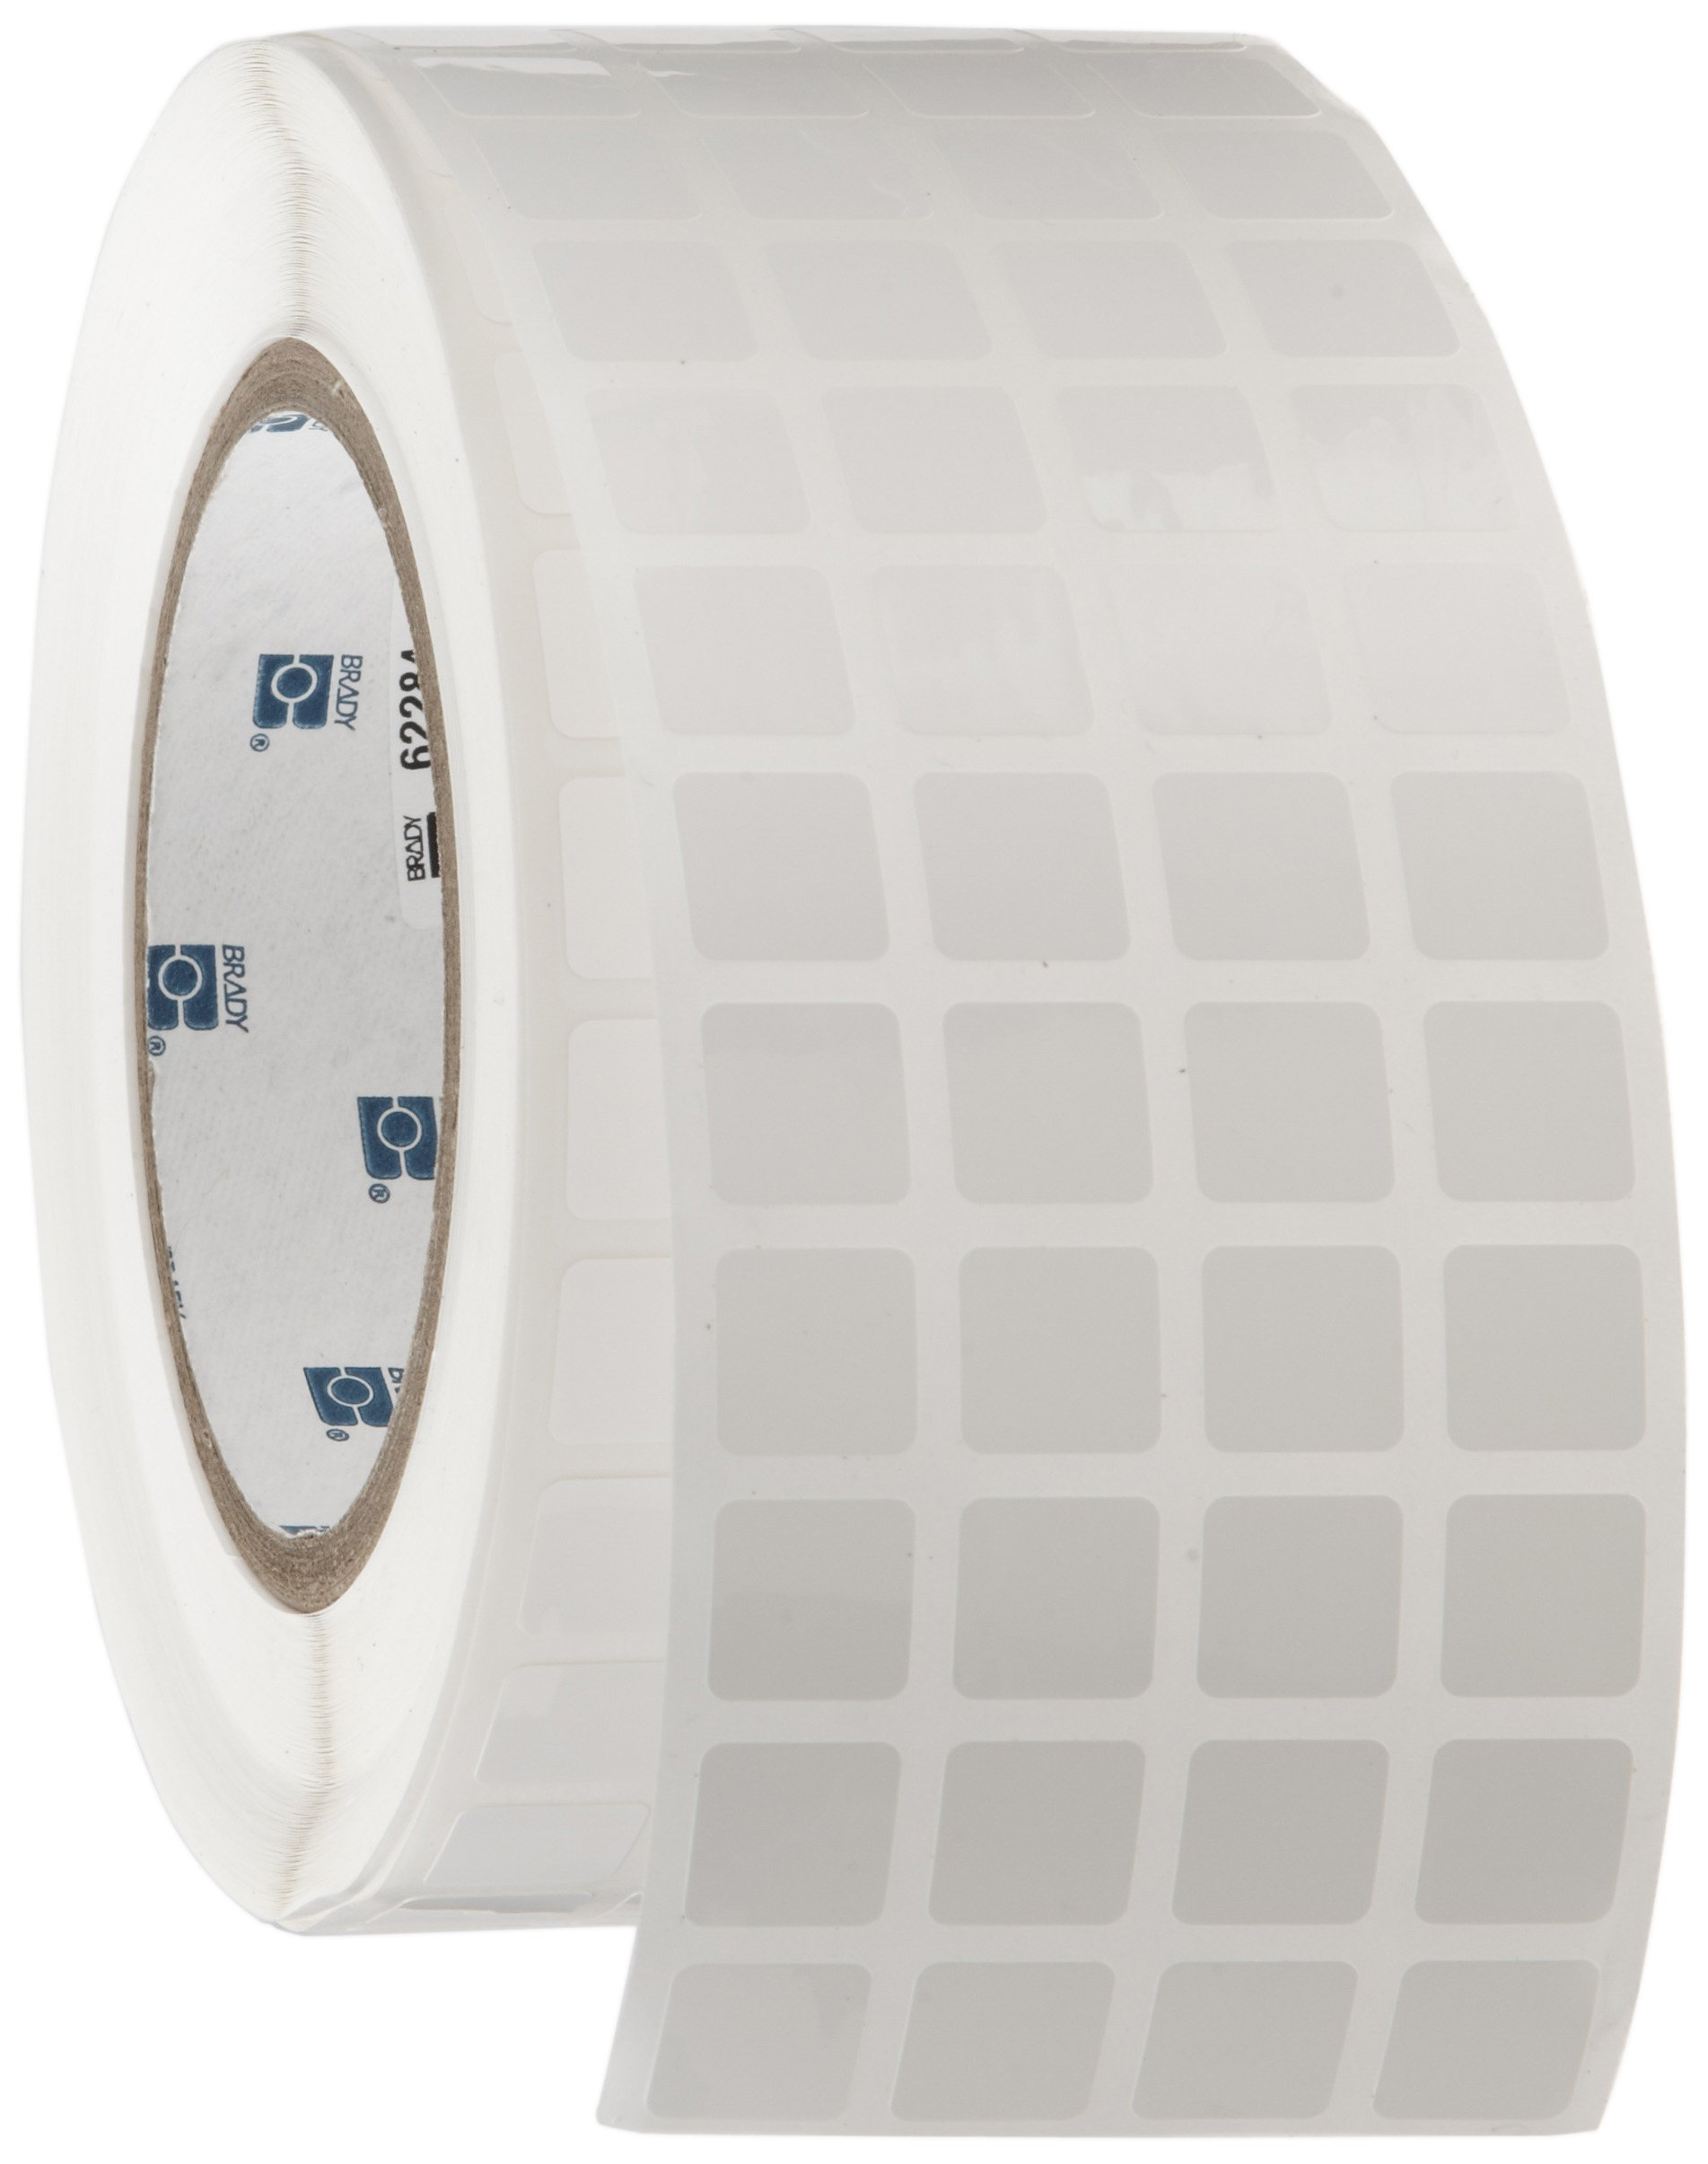 Brady THT-149-422-10 0.5'' Width x 0.5'' Height, B-422 Permanent Polyester, Gloss Finish White Thermal Transfer Printable Label (10000 per Roll) by Brady